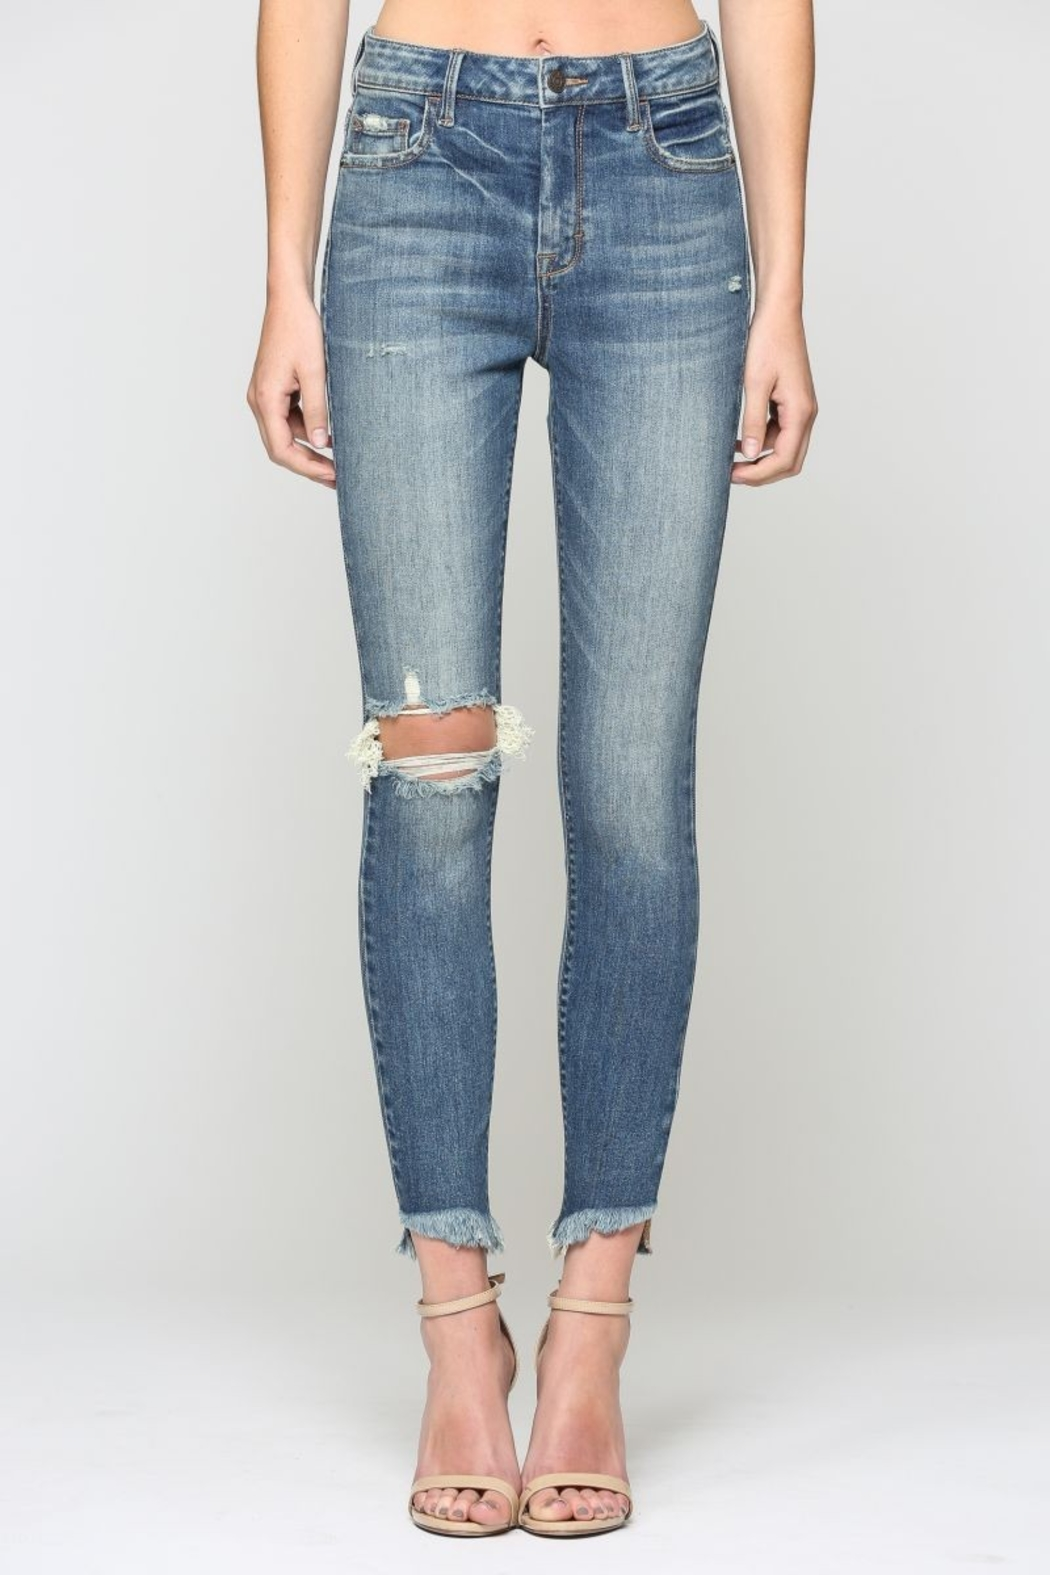 Hidden Jeans TAYOLOR HIGH RISE - Front Full Image